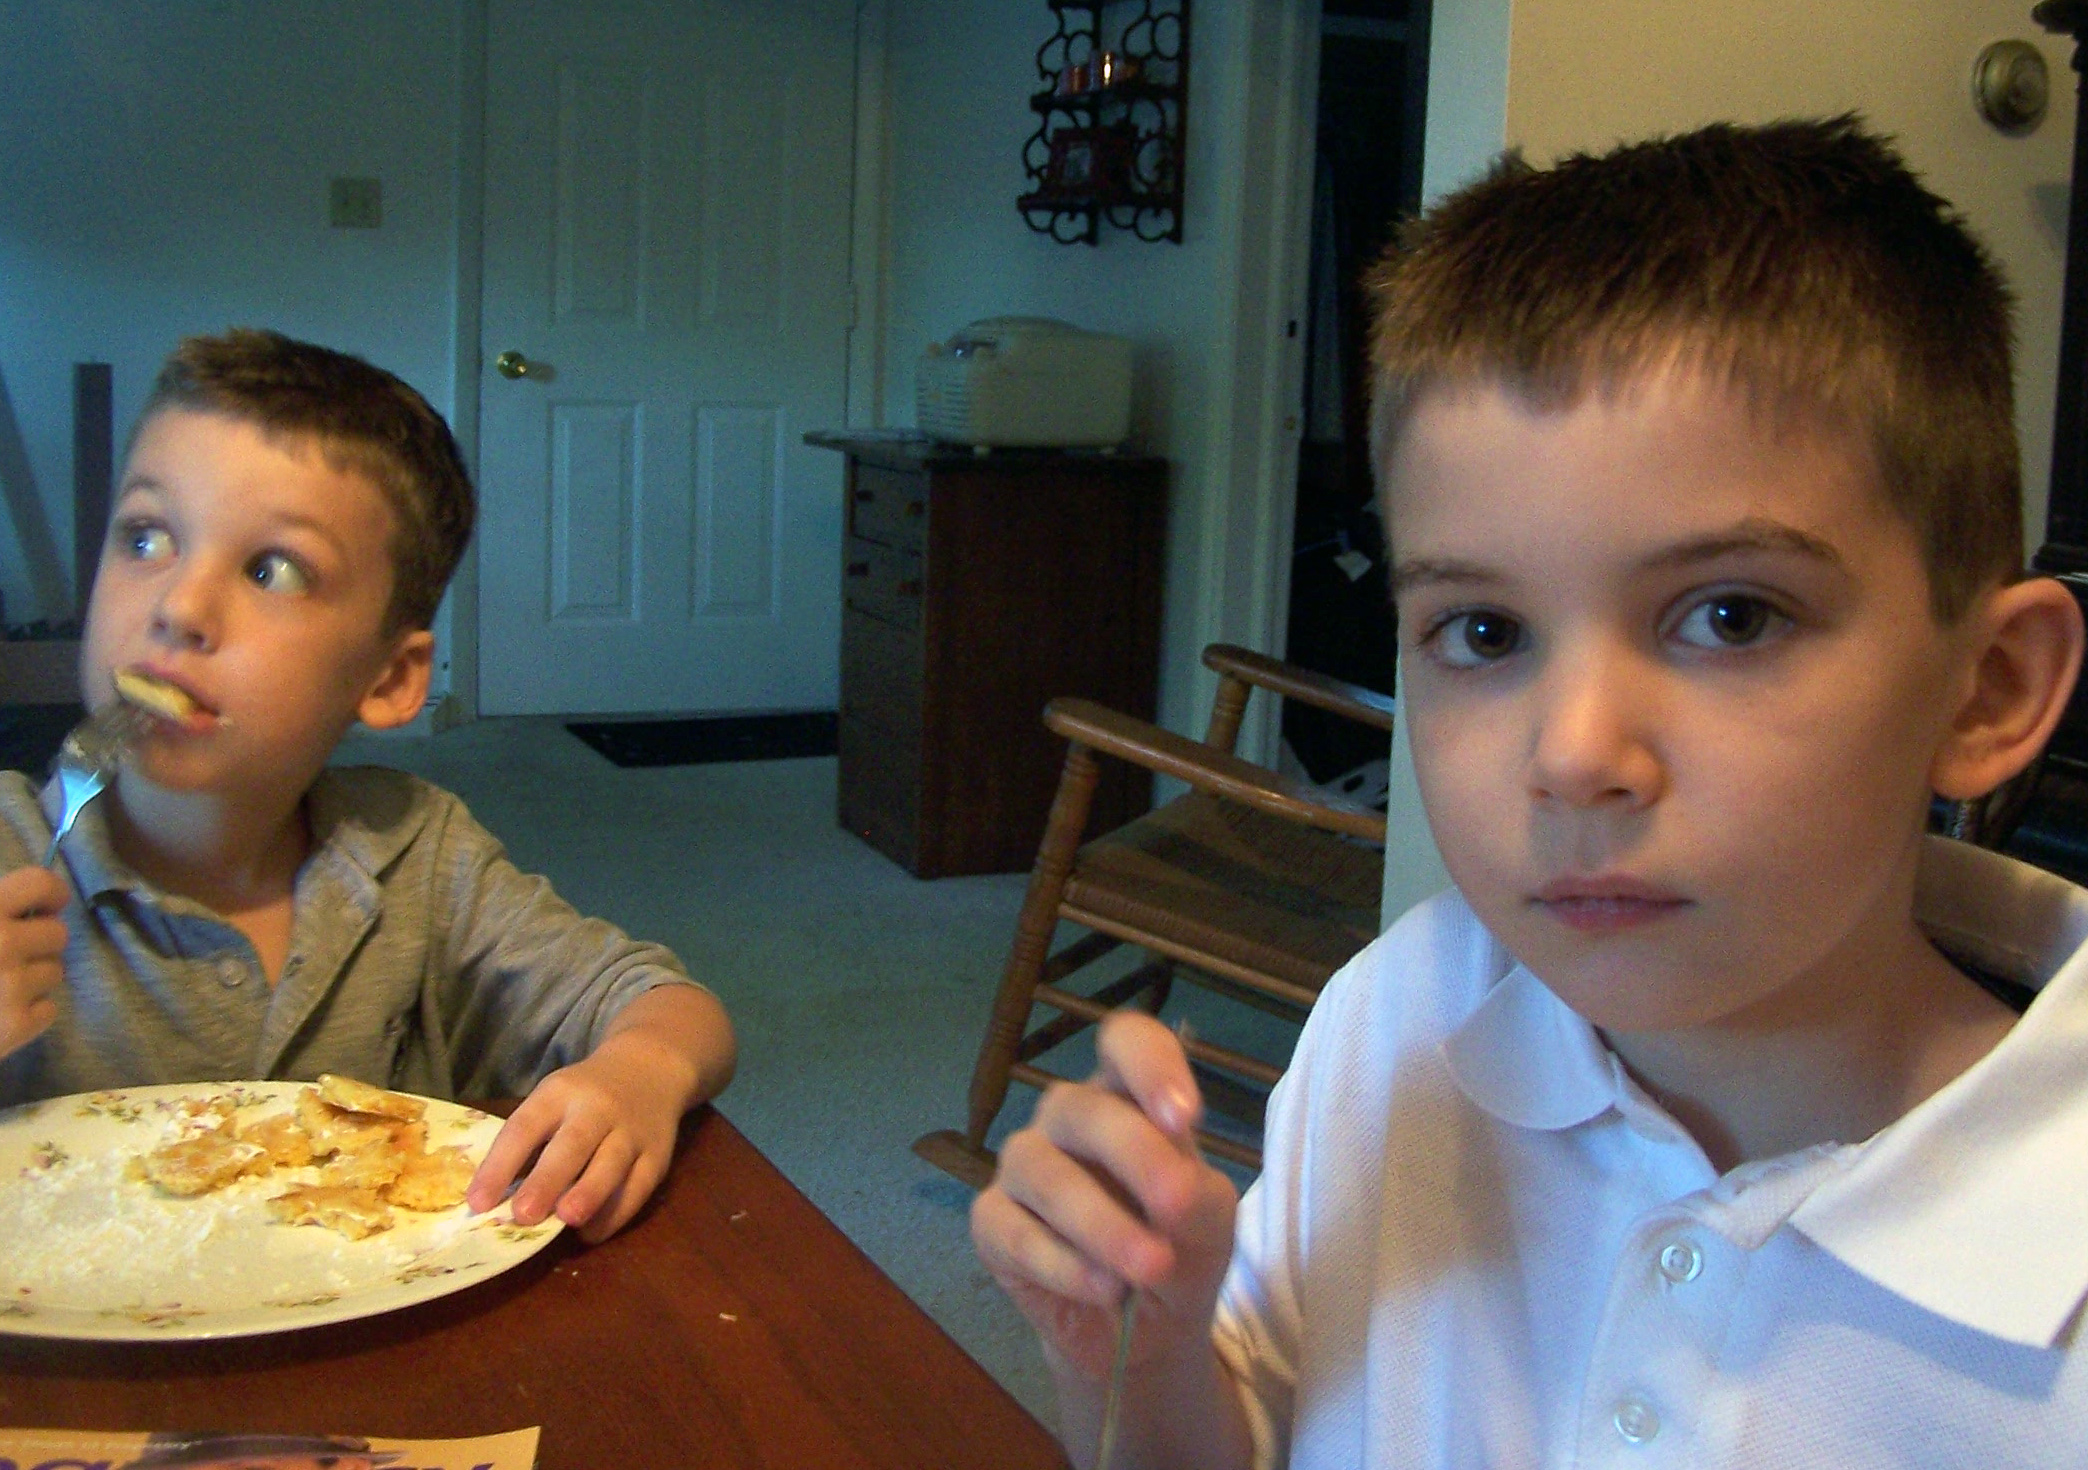 boys eating breakfast, back to school, anxiety